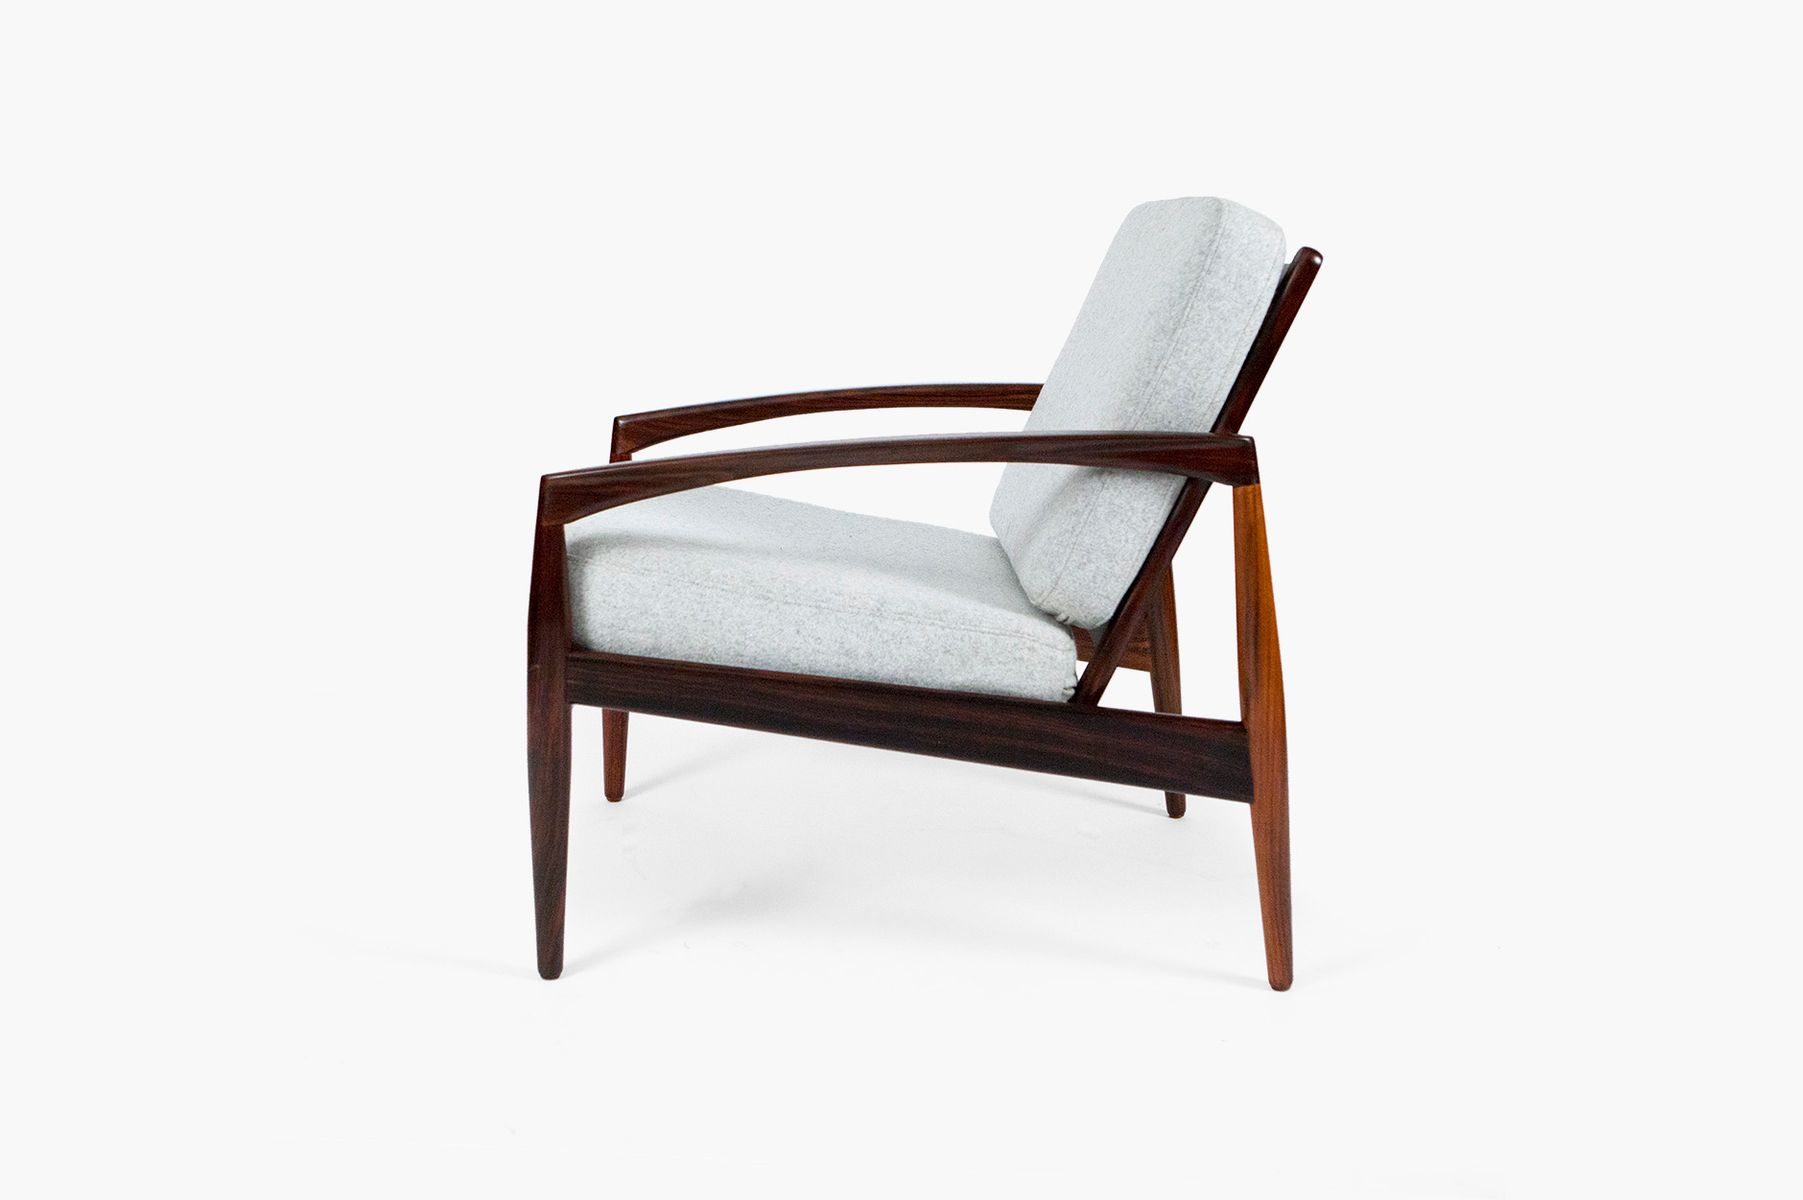 Paper Knife Lounge Chair By Kai Kristiansen For Magnus Olesen 1950s For Sale At Pamono